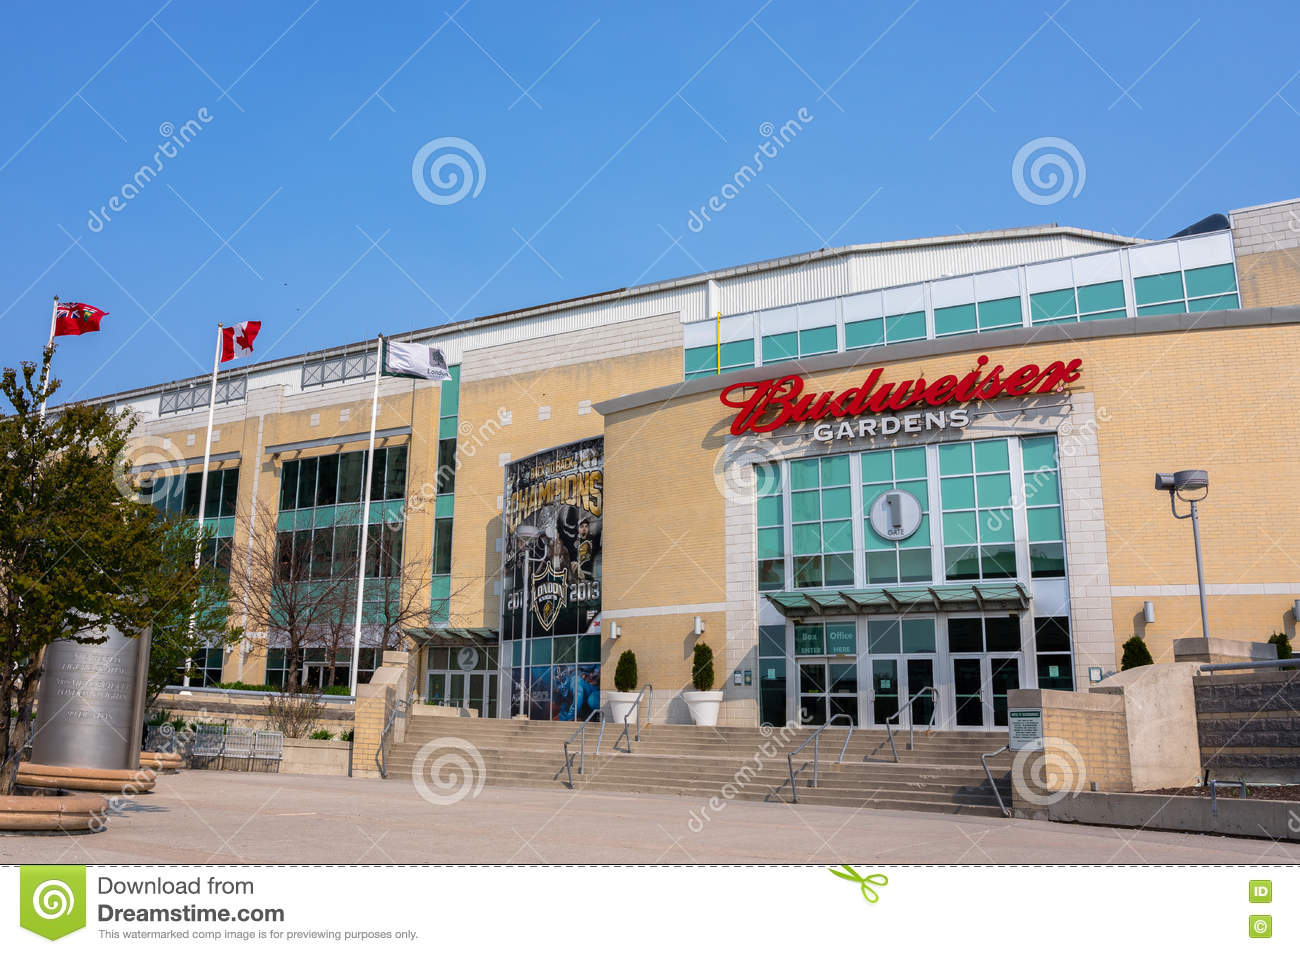 Budweiser Gardens Editorial Photography Image Of Entertainment 71089972